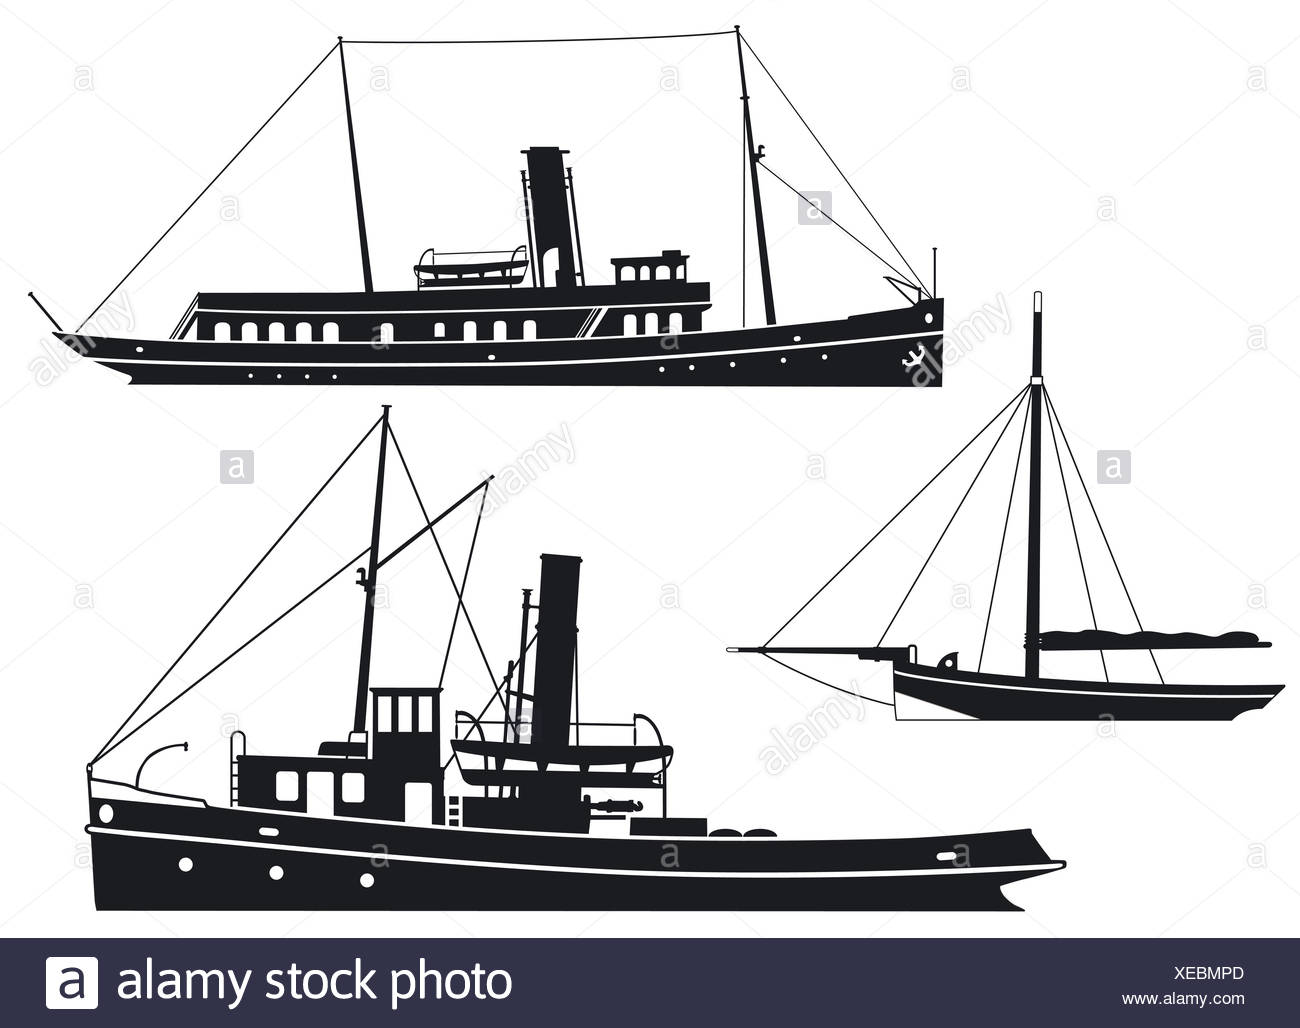 Steam ships and boats Stock Photo